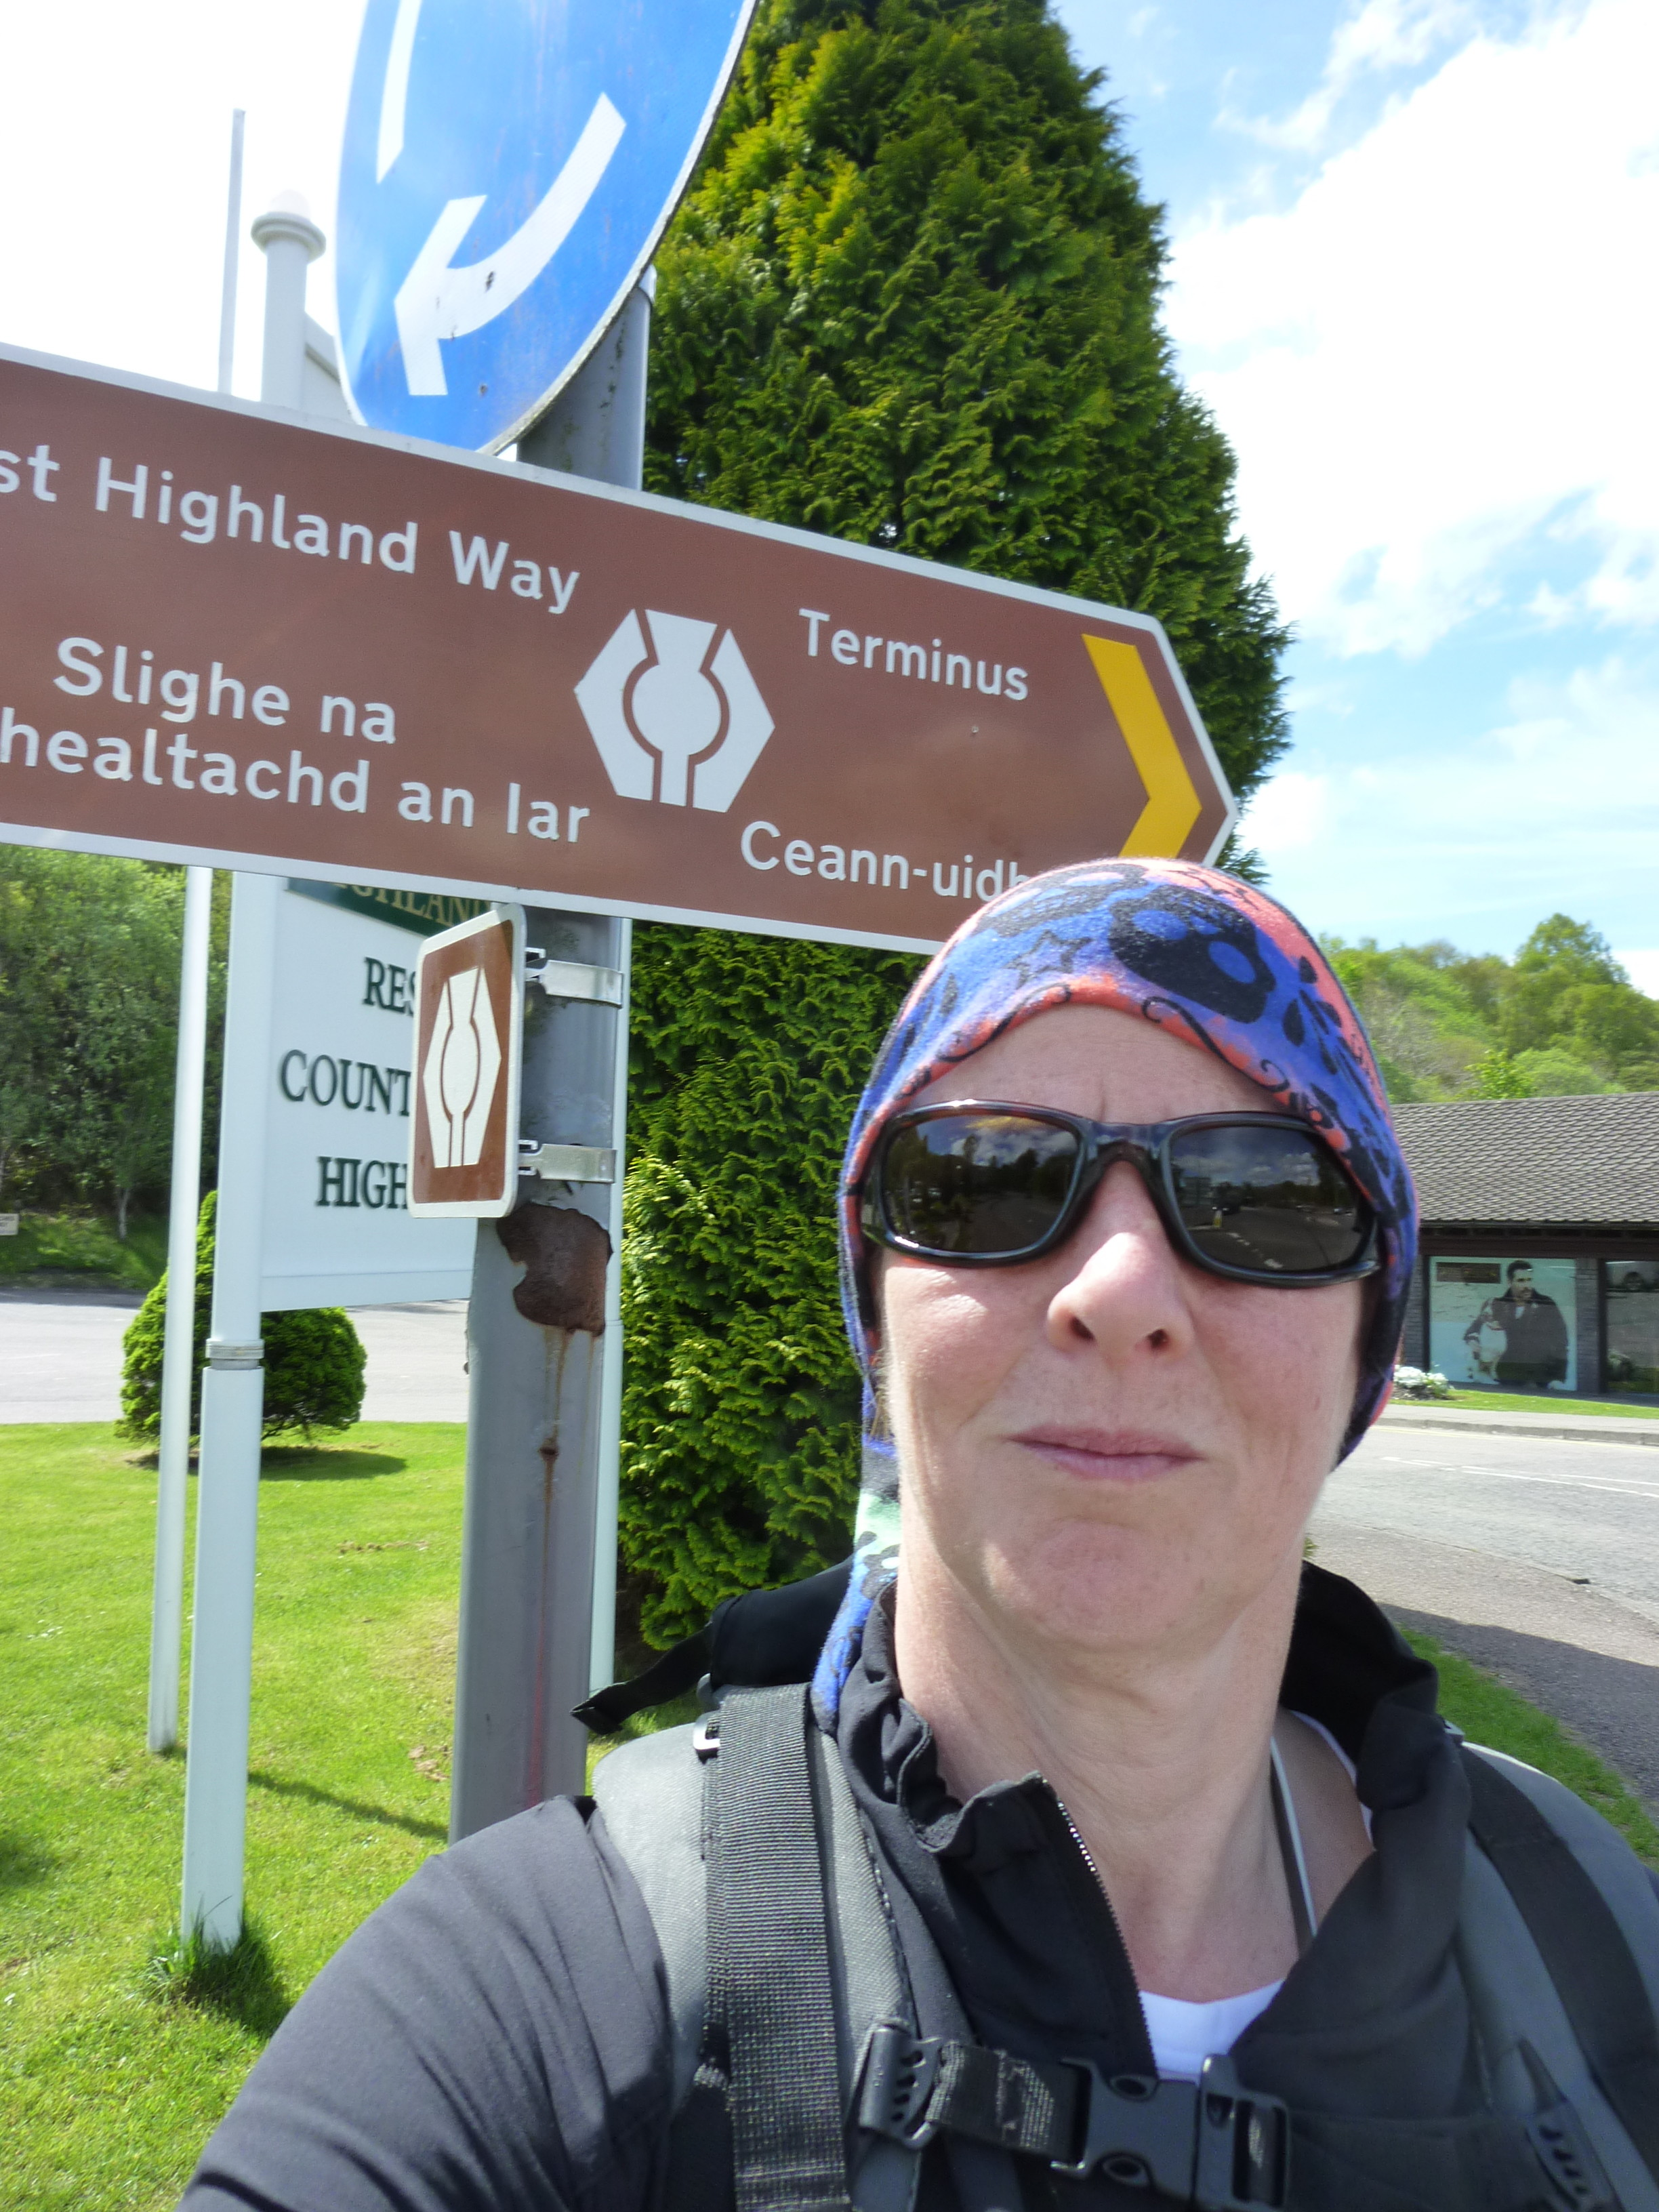 The beginning of the West Highland Way